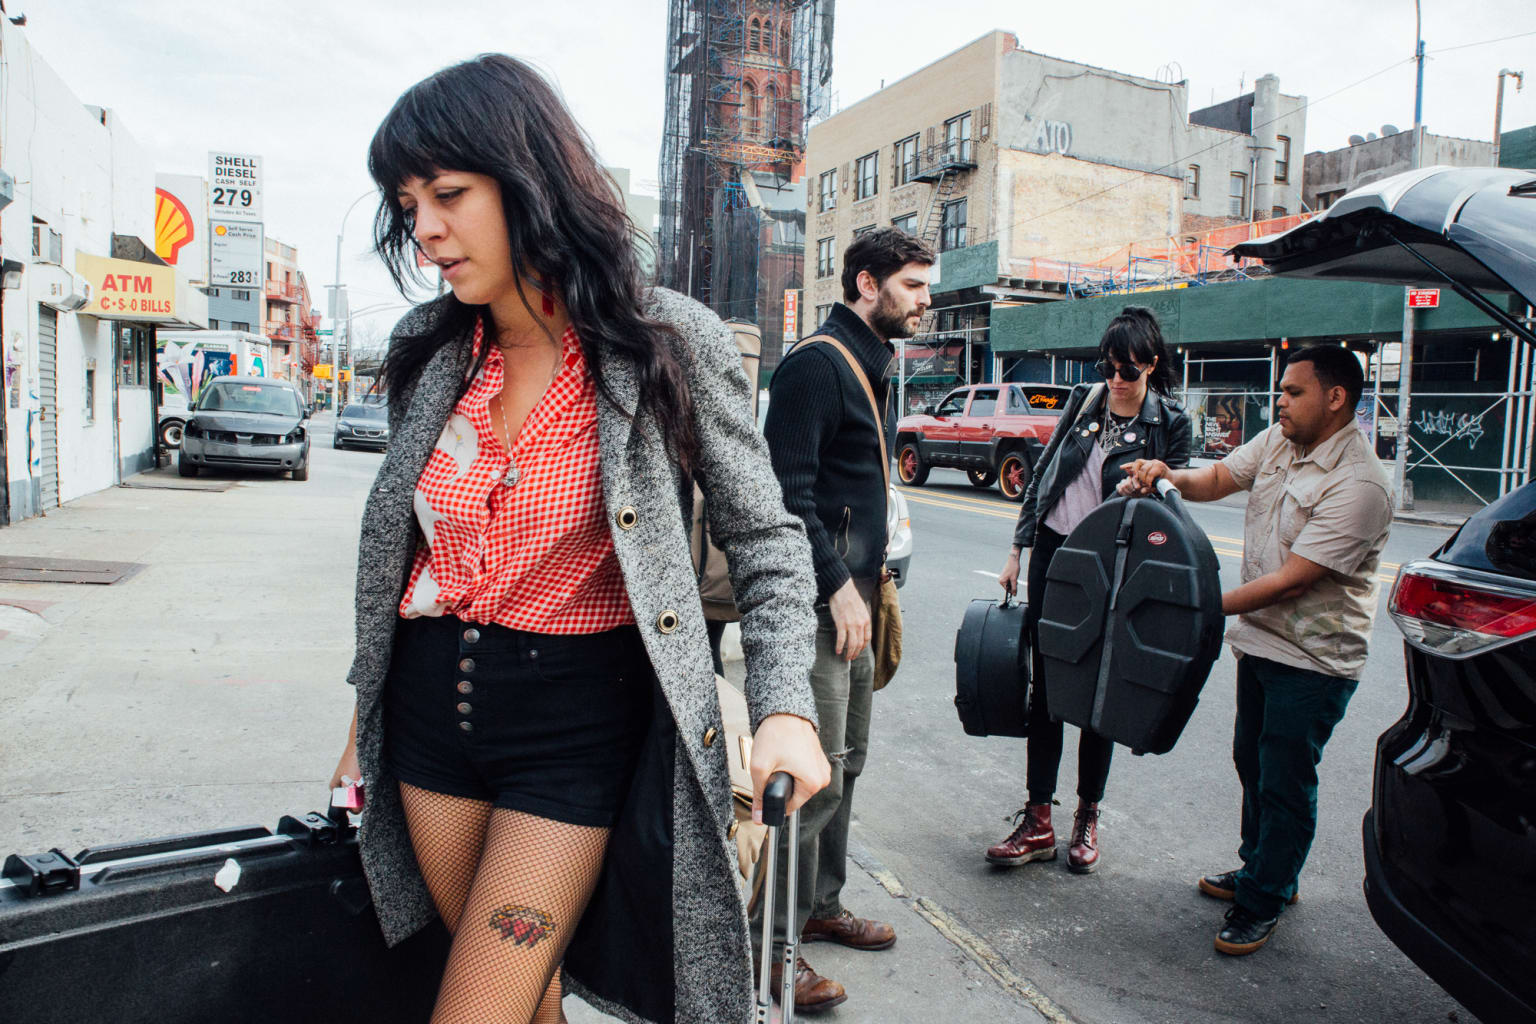 The Coathangers Spend a Nosebleed Weekend in NYC